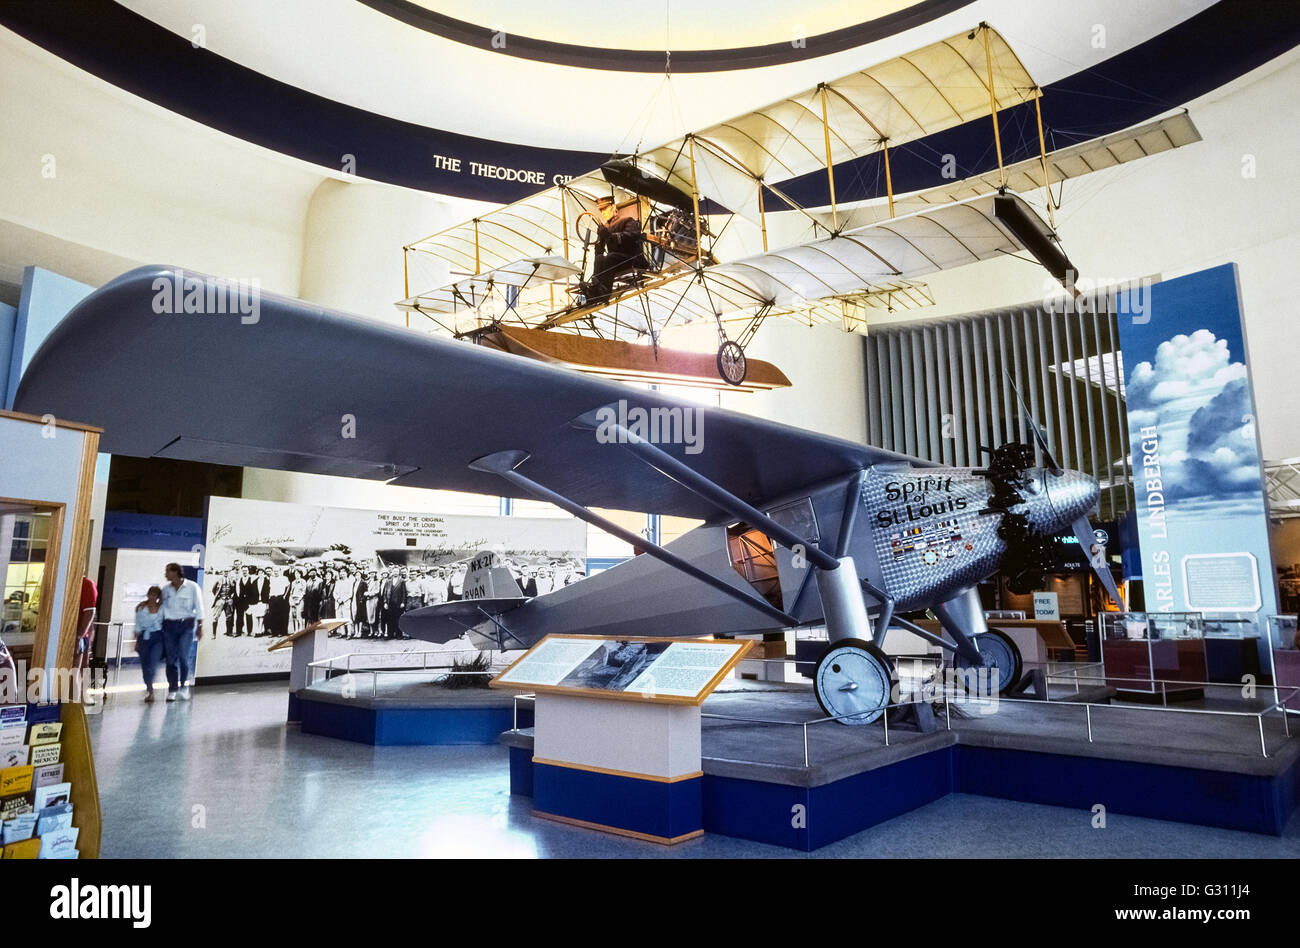 """A replica of the Charles A. Lindbergh's """"Spirit of St. Louis"""" airplane that was the first to fly nonstop from New York to Paris in 1927 is a major attraction at the San Diego Air & Space Museum in San Diego, California, USA. With financial backing from the Missouri city after which it was named, the monoplane was designed, built and tested in San Diego before making its historic flight that took 33-1/2 hours and won Lindbergh $25,000 in prize money. Displayed above the """"Spirit of St. Louis"""" is an early glider aircraft. Stock Photo"""